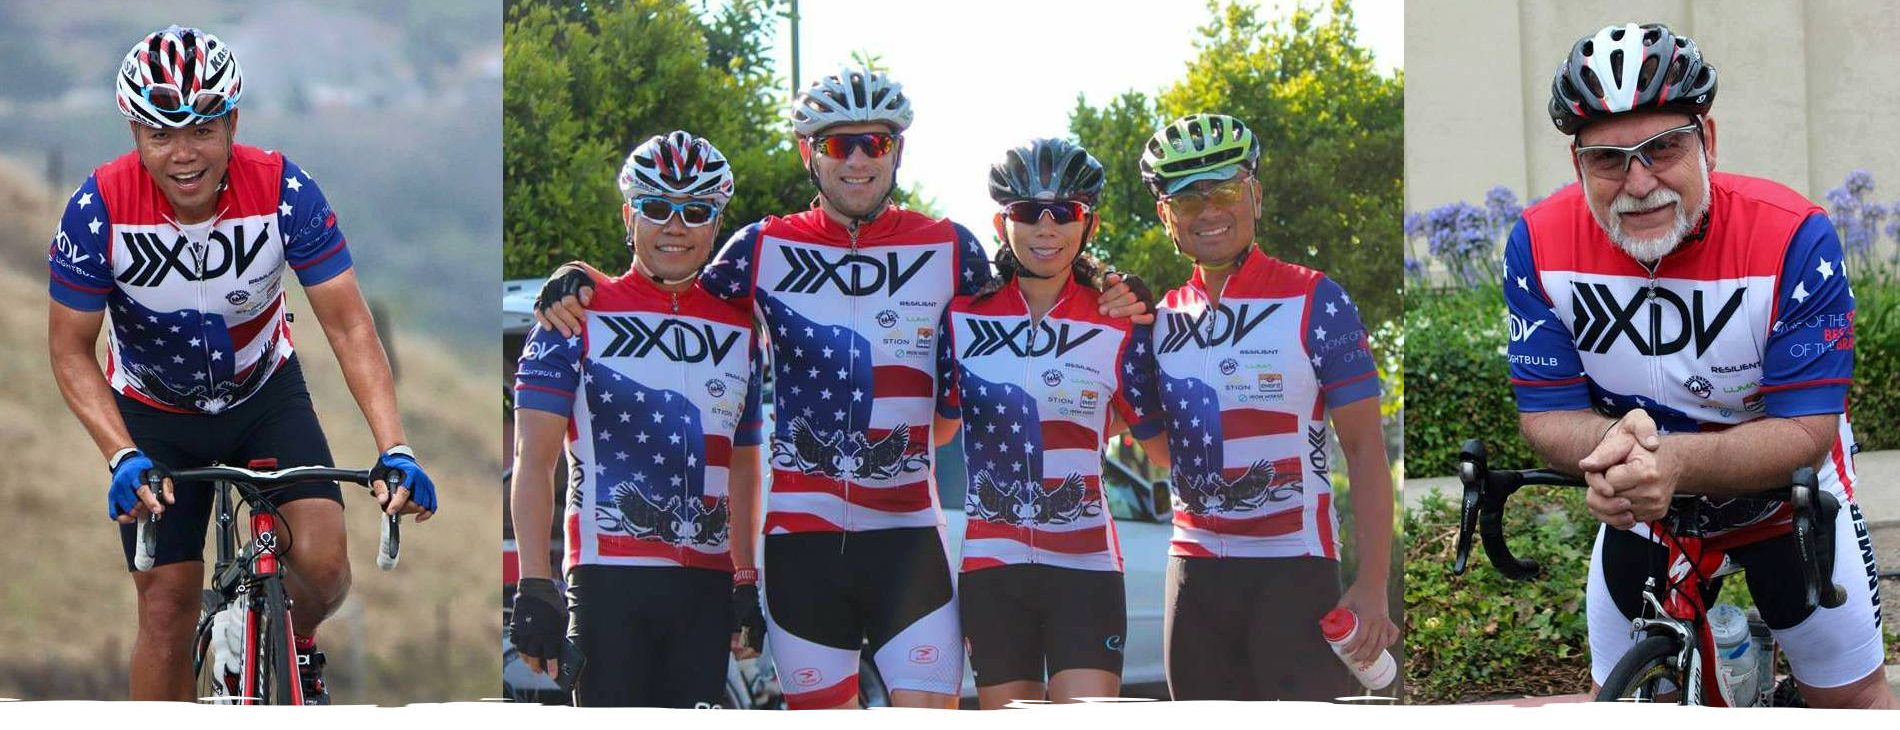 Custom Cycling Apparel - Custom Cycling Jerseys and Bike Shorts for ... 708139318